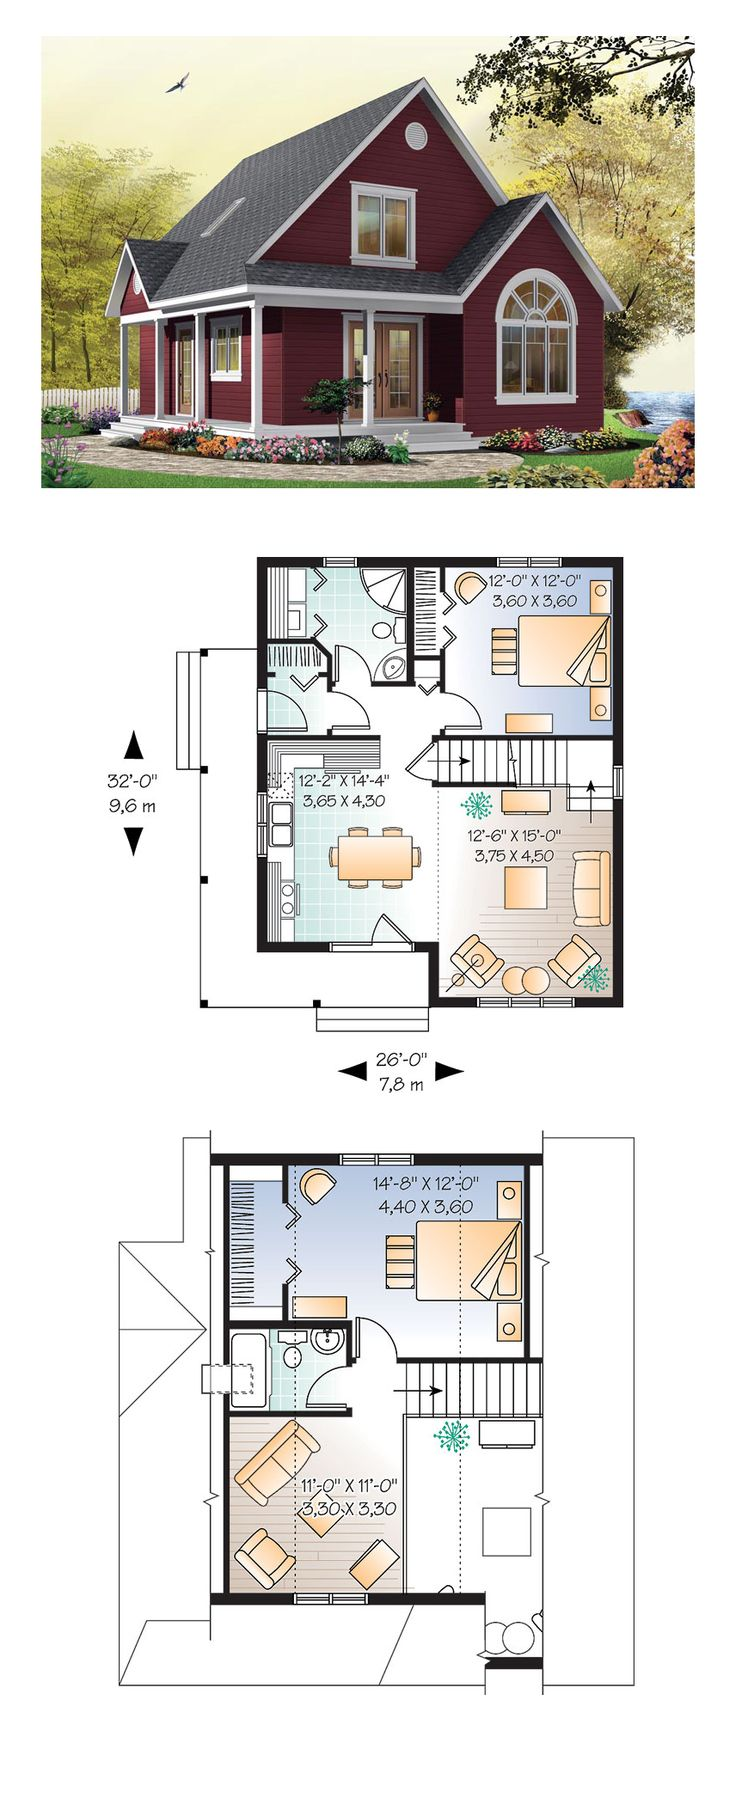 best 25 small homes ideas on pinterest small home plans tiny cottage floor plans and dog house blueprints - Small Homes Plans